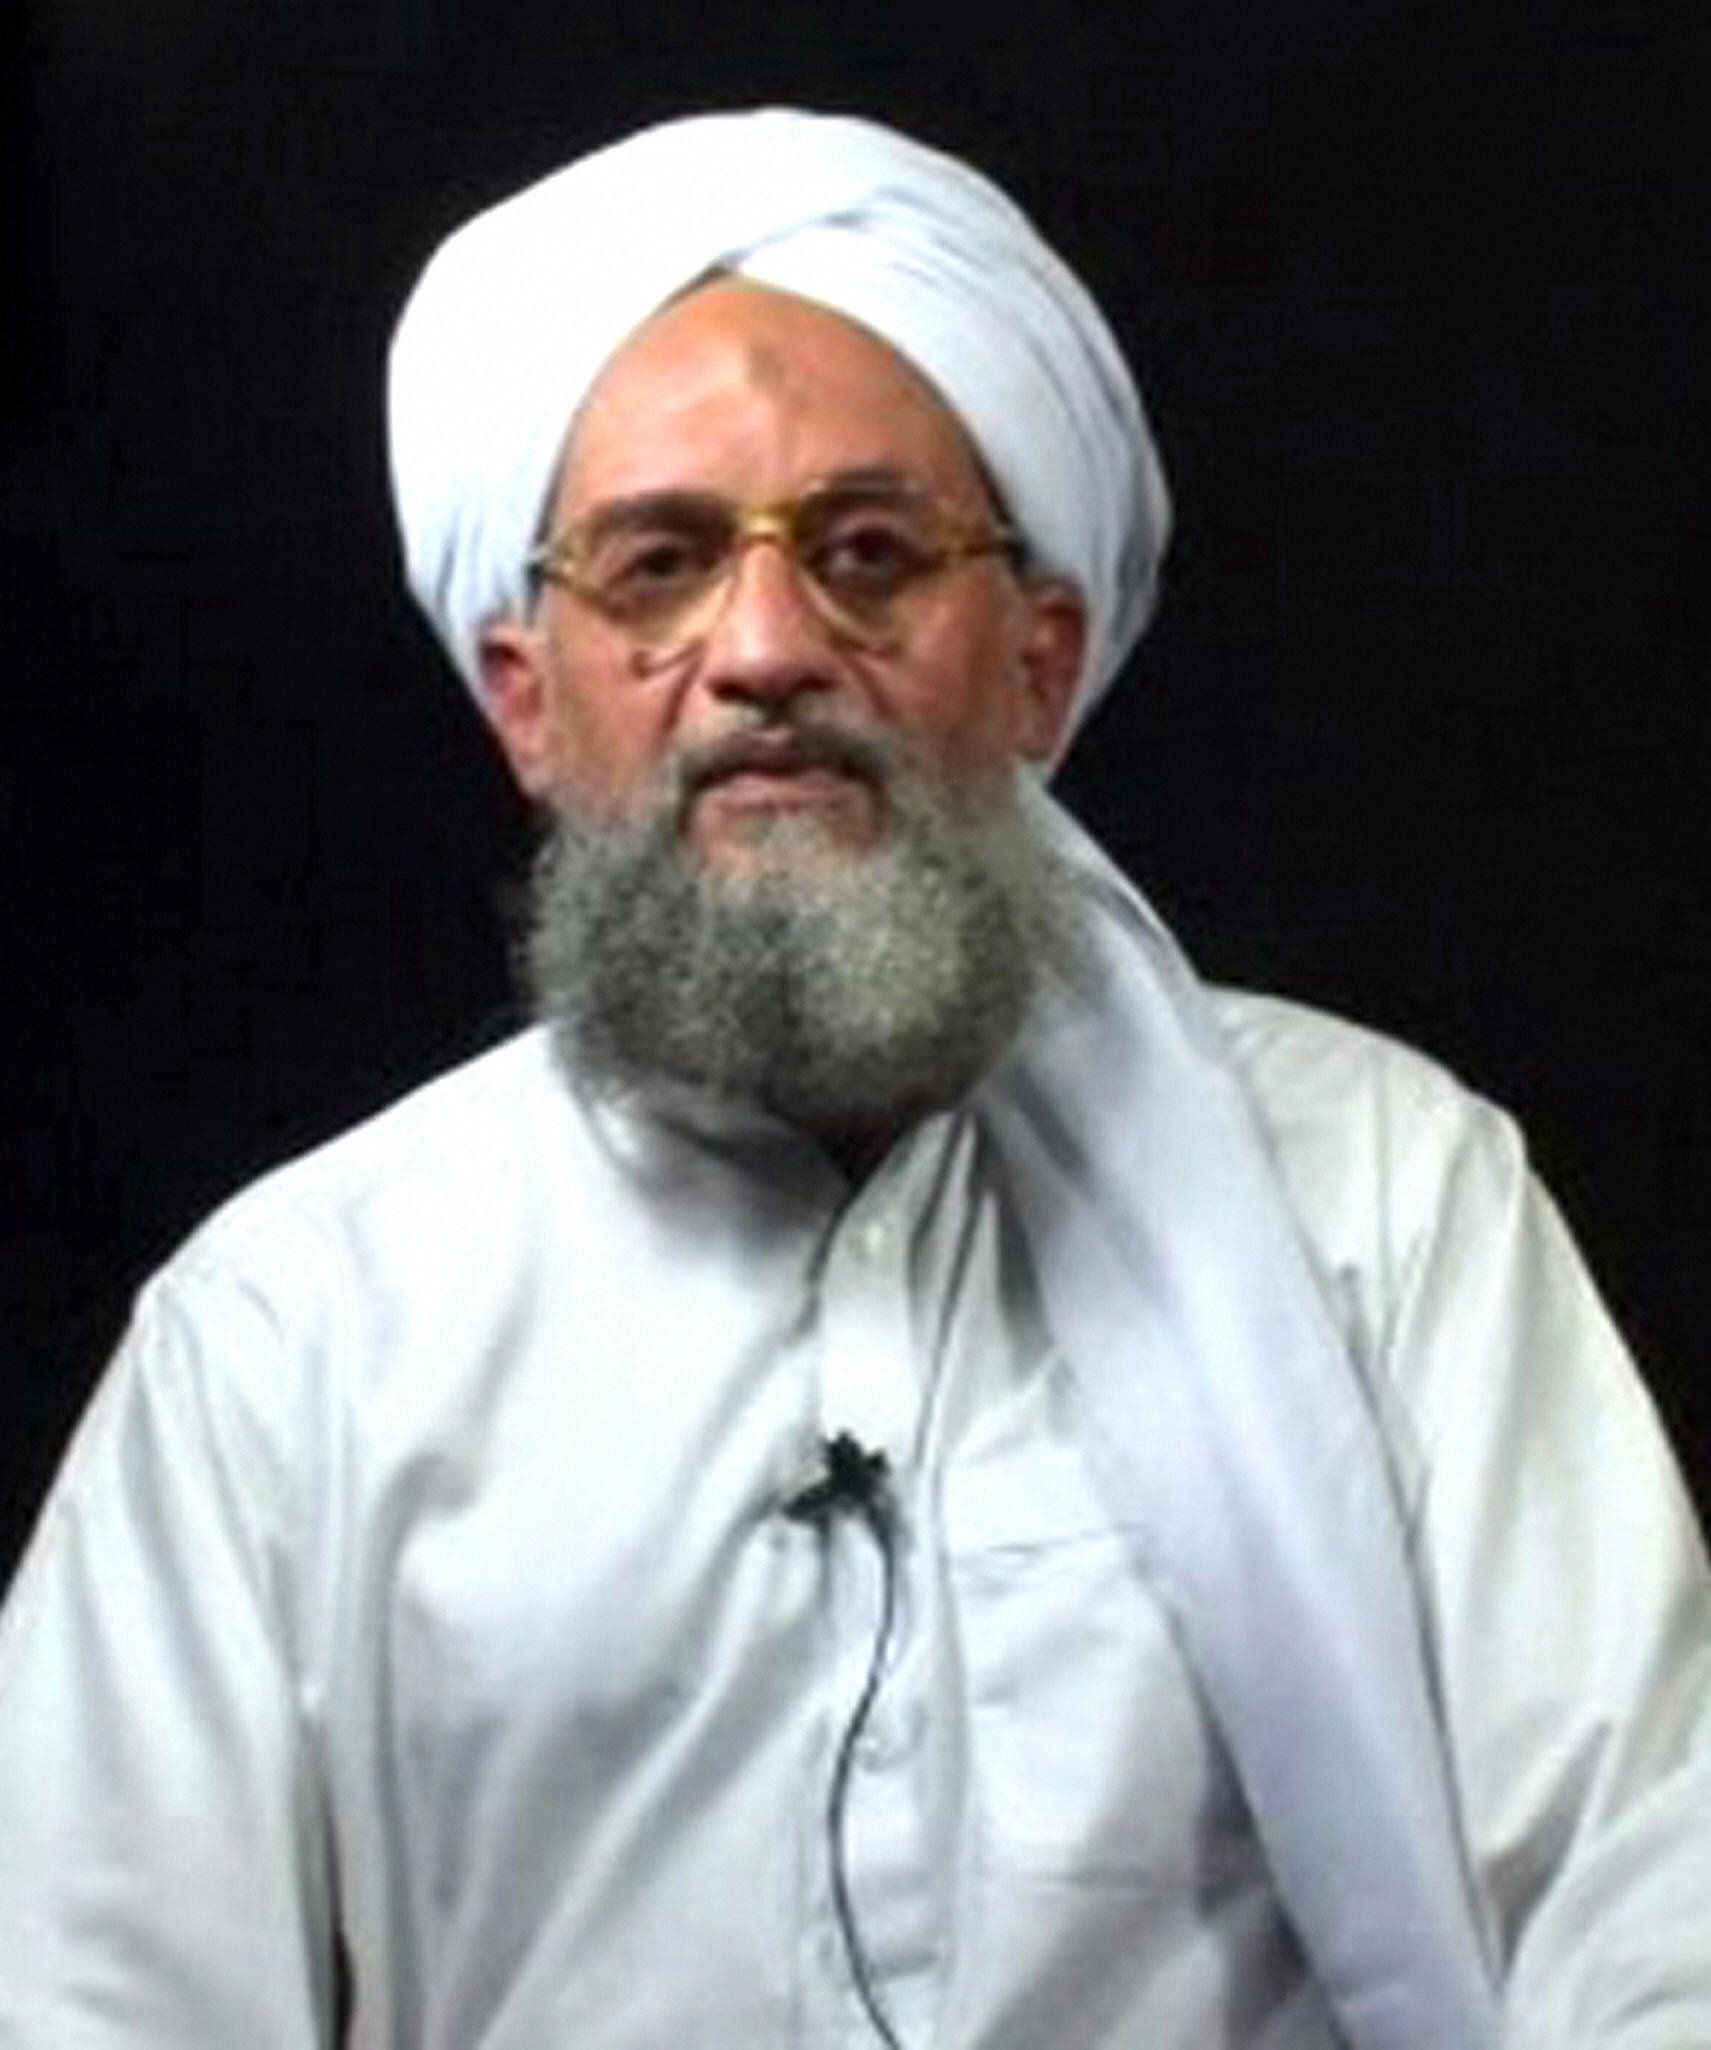 TO GO WITH AFP STORY BY MICHEL MOUTOT : (FILES) - This grab taken from a video entitled 'An invitation to Islam' produced by Al-Qaeda-linked media group as-Sahab and released on the Internet 02 September 2006 shows the number two in al-Qaeda, Ayman al-Zawahiri, at an undisclosed date and place. Internet users aimed questions at Al-Qaeda's Ayman Al-Zawahiri for a period of one month via jihadi chat groups after the terrorist network's second in command promised to respond to them. For the first time, Osama Bin Laden -- the man at the pinnacle of the terrorist network -- invited both 'individuals and the media' to post their questions to Zawahiri until 16 January 2008 on three websites regularly used by Al-Qaeda.  AFP PHOTO (Photo credit should read -/AFP/Getty Images)